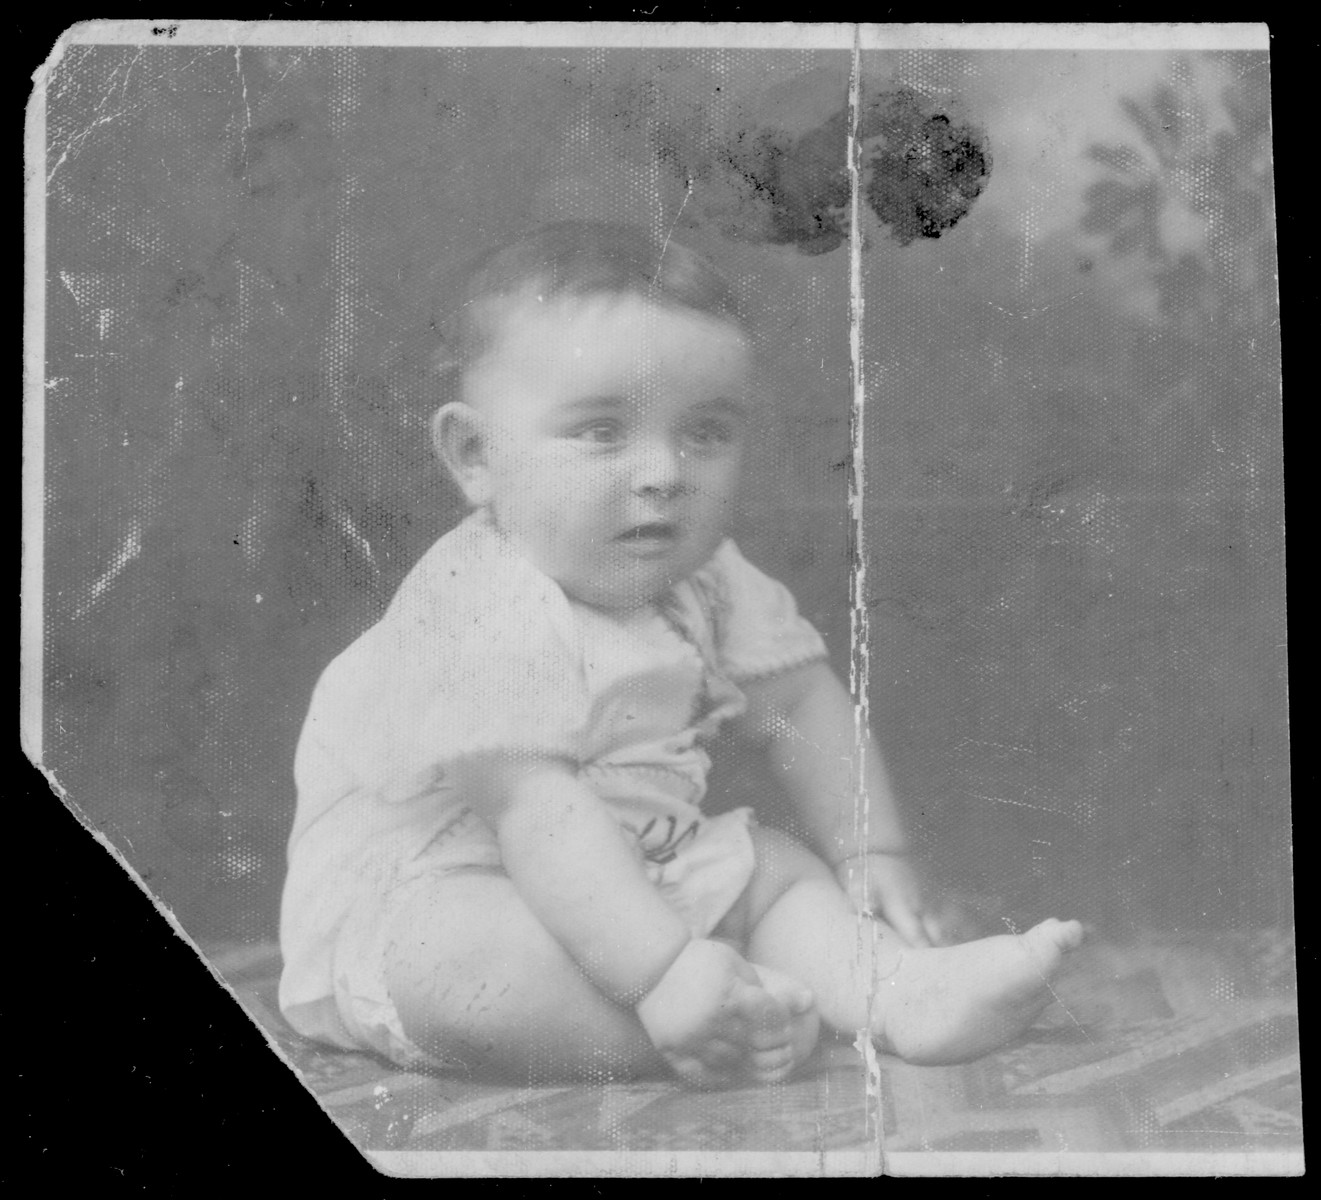 Portrait of Chaim Lehman, the donor's nephew.    Chaim was deported to Auschwitz with his mother Basia and sister Miriam in August 1942.  They all perished.